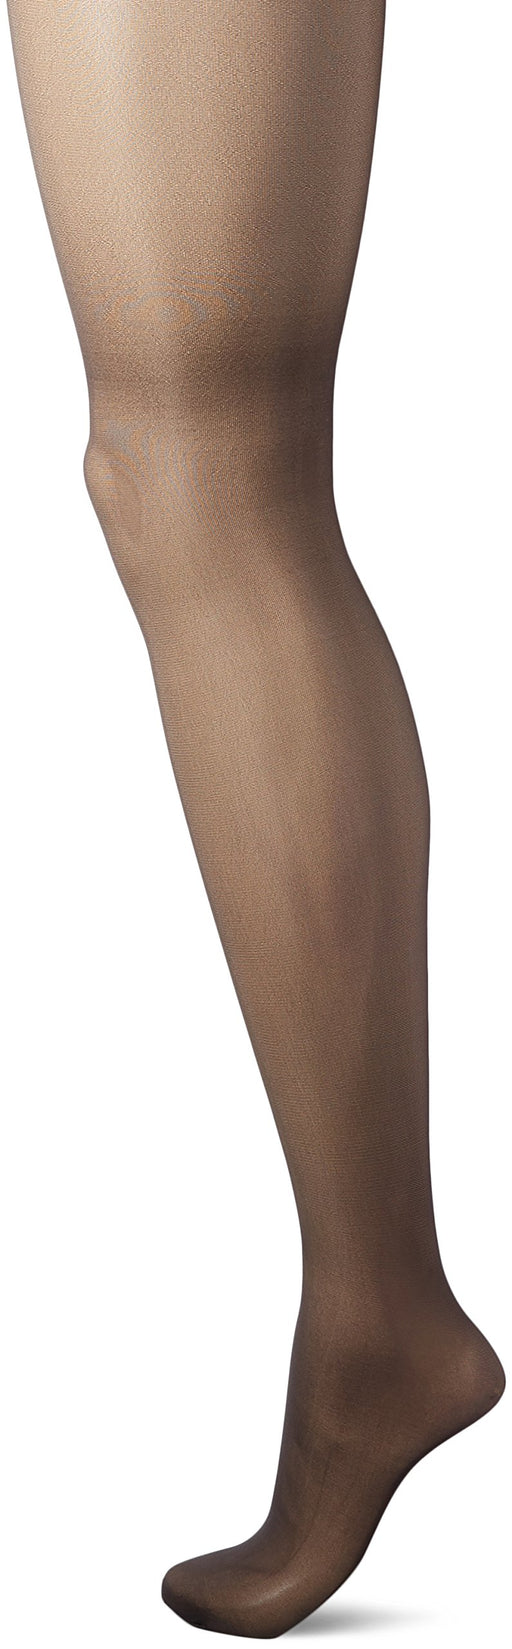 L'eggs Women's Sheer Energy 2 Pair Control Top Sheer Toe Panty Hose